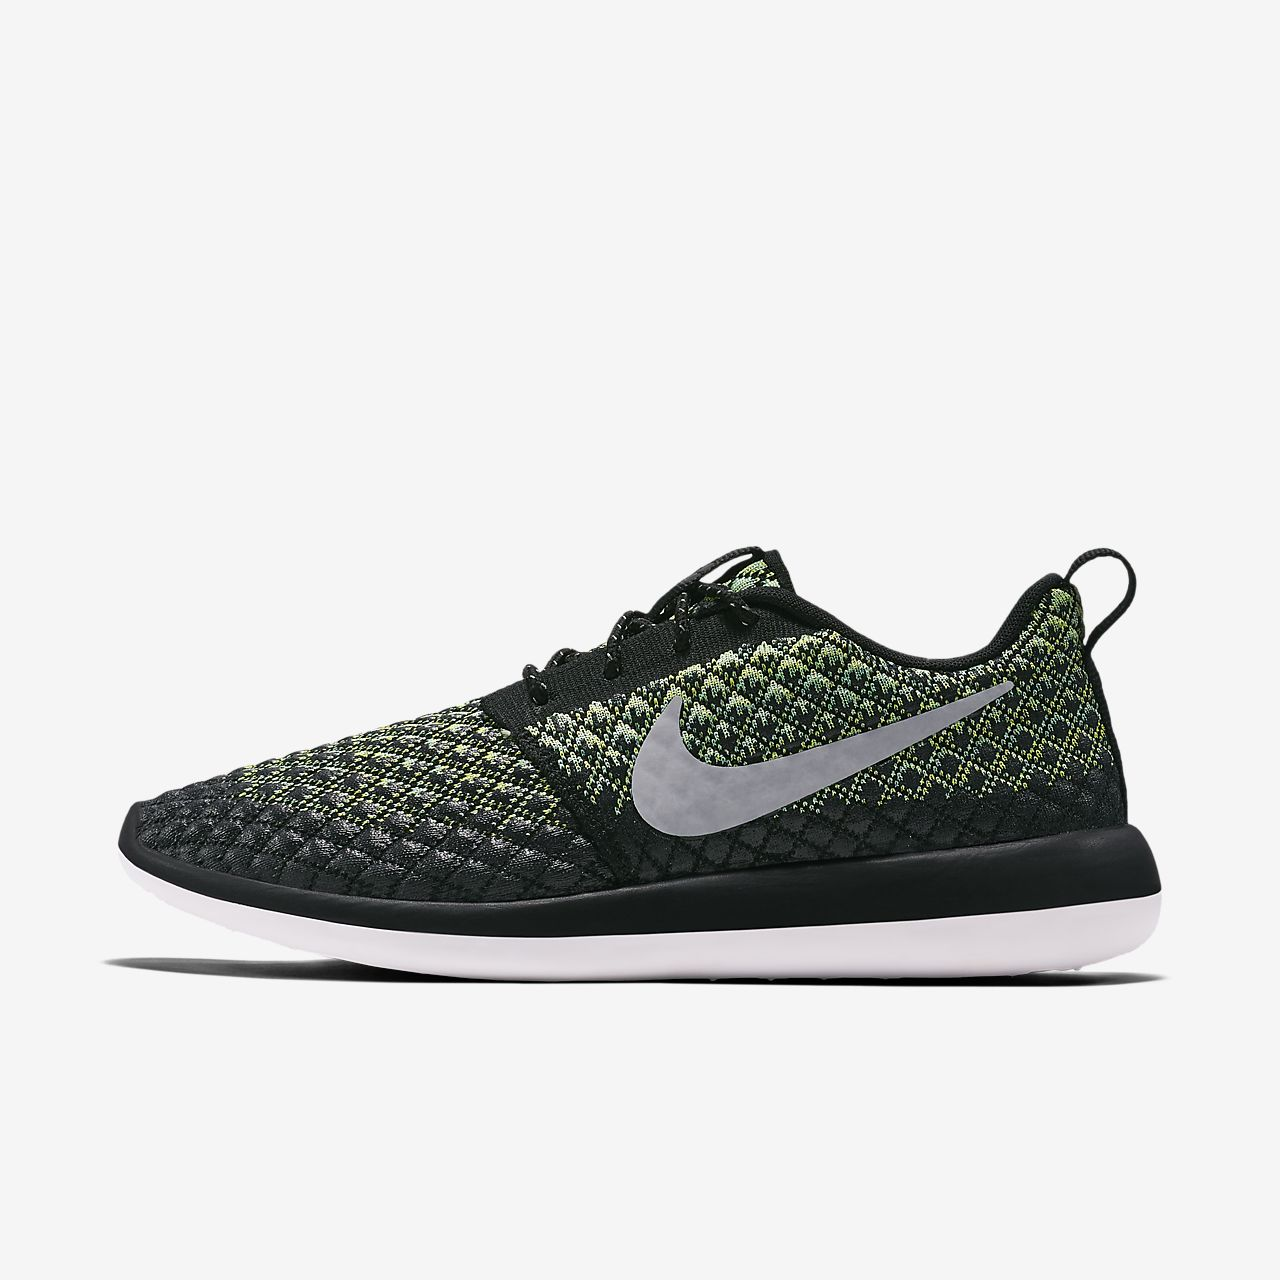 ... Nike Roshe Two Flyknit 365 Men's Shoe